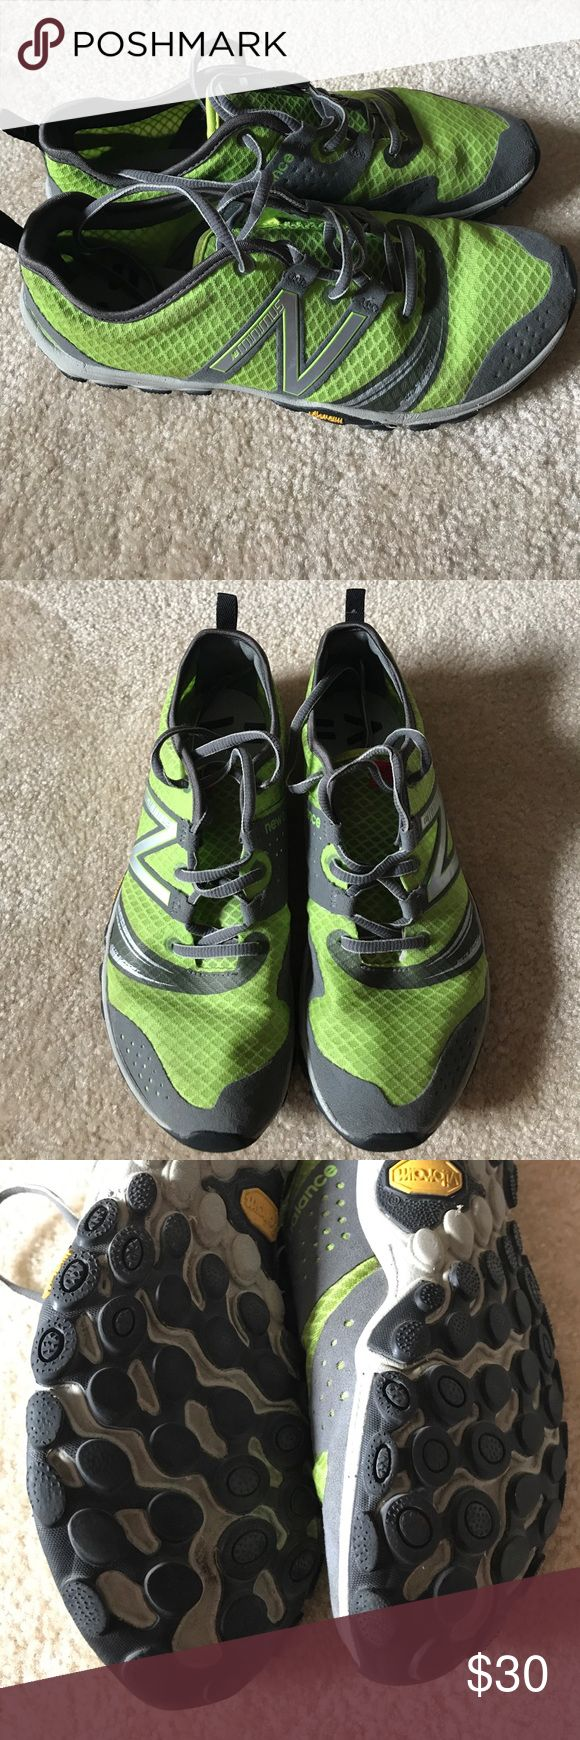 New Balance minimus running/Crossfit, vibram sole Used, good condition. New Balance Shoes Athletic Shoes